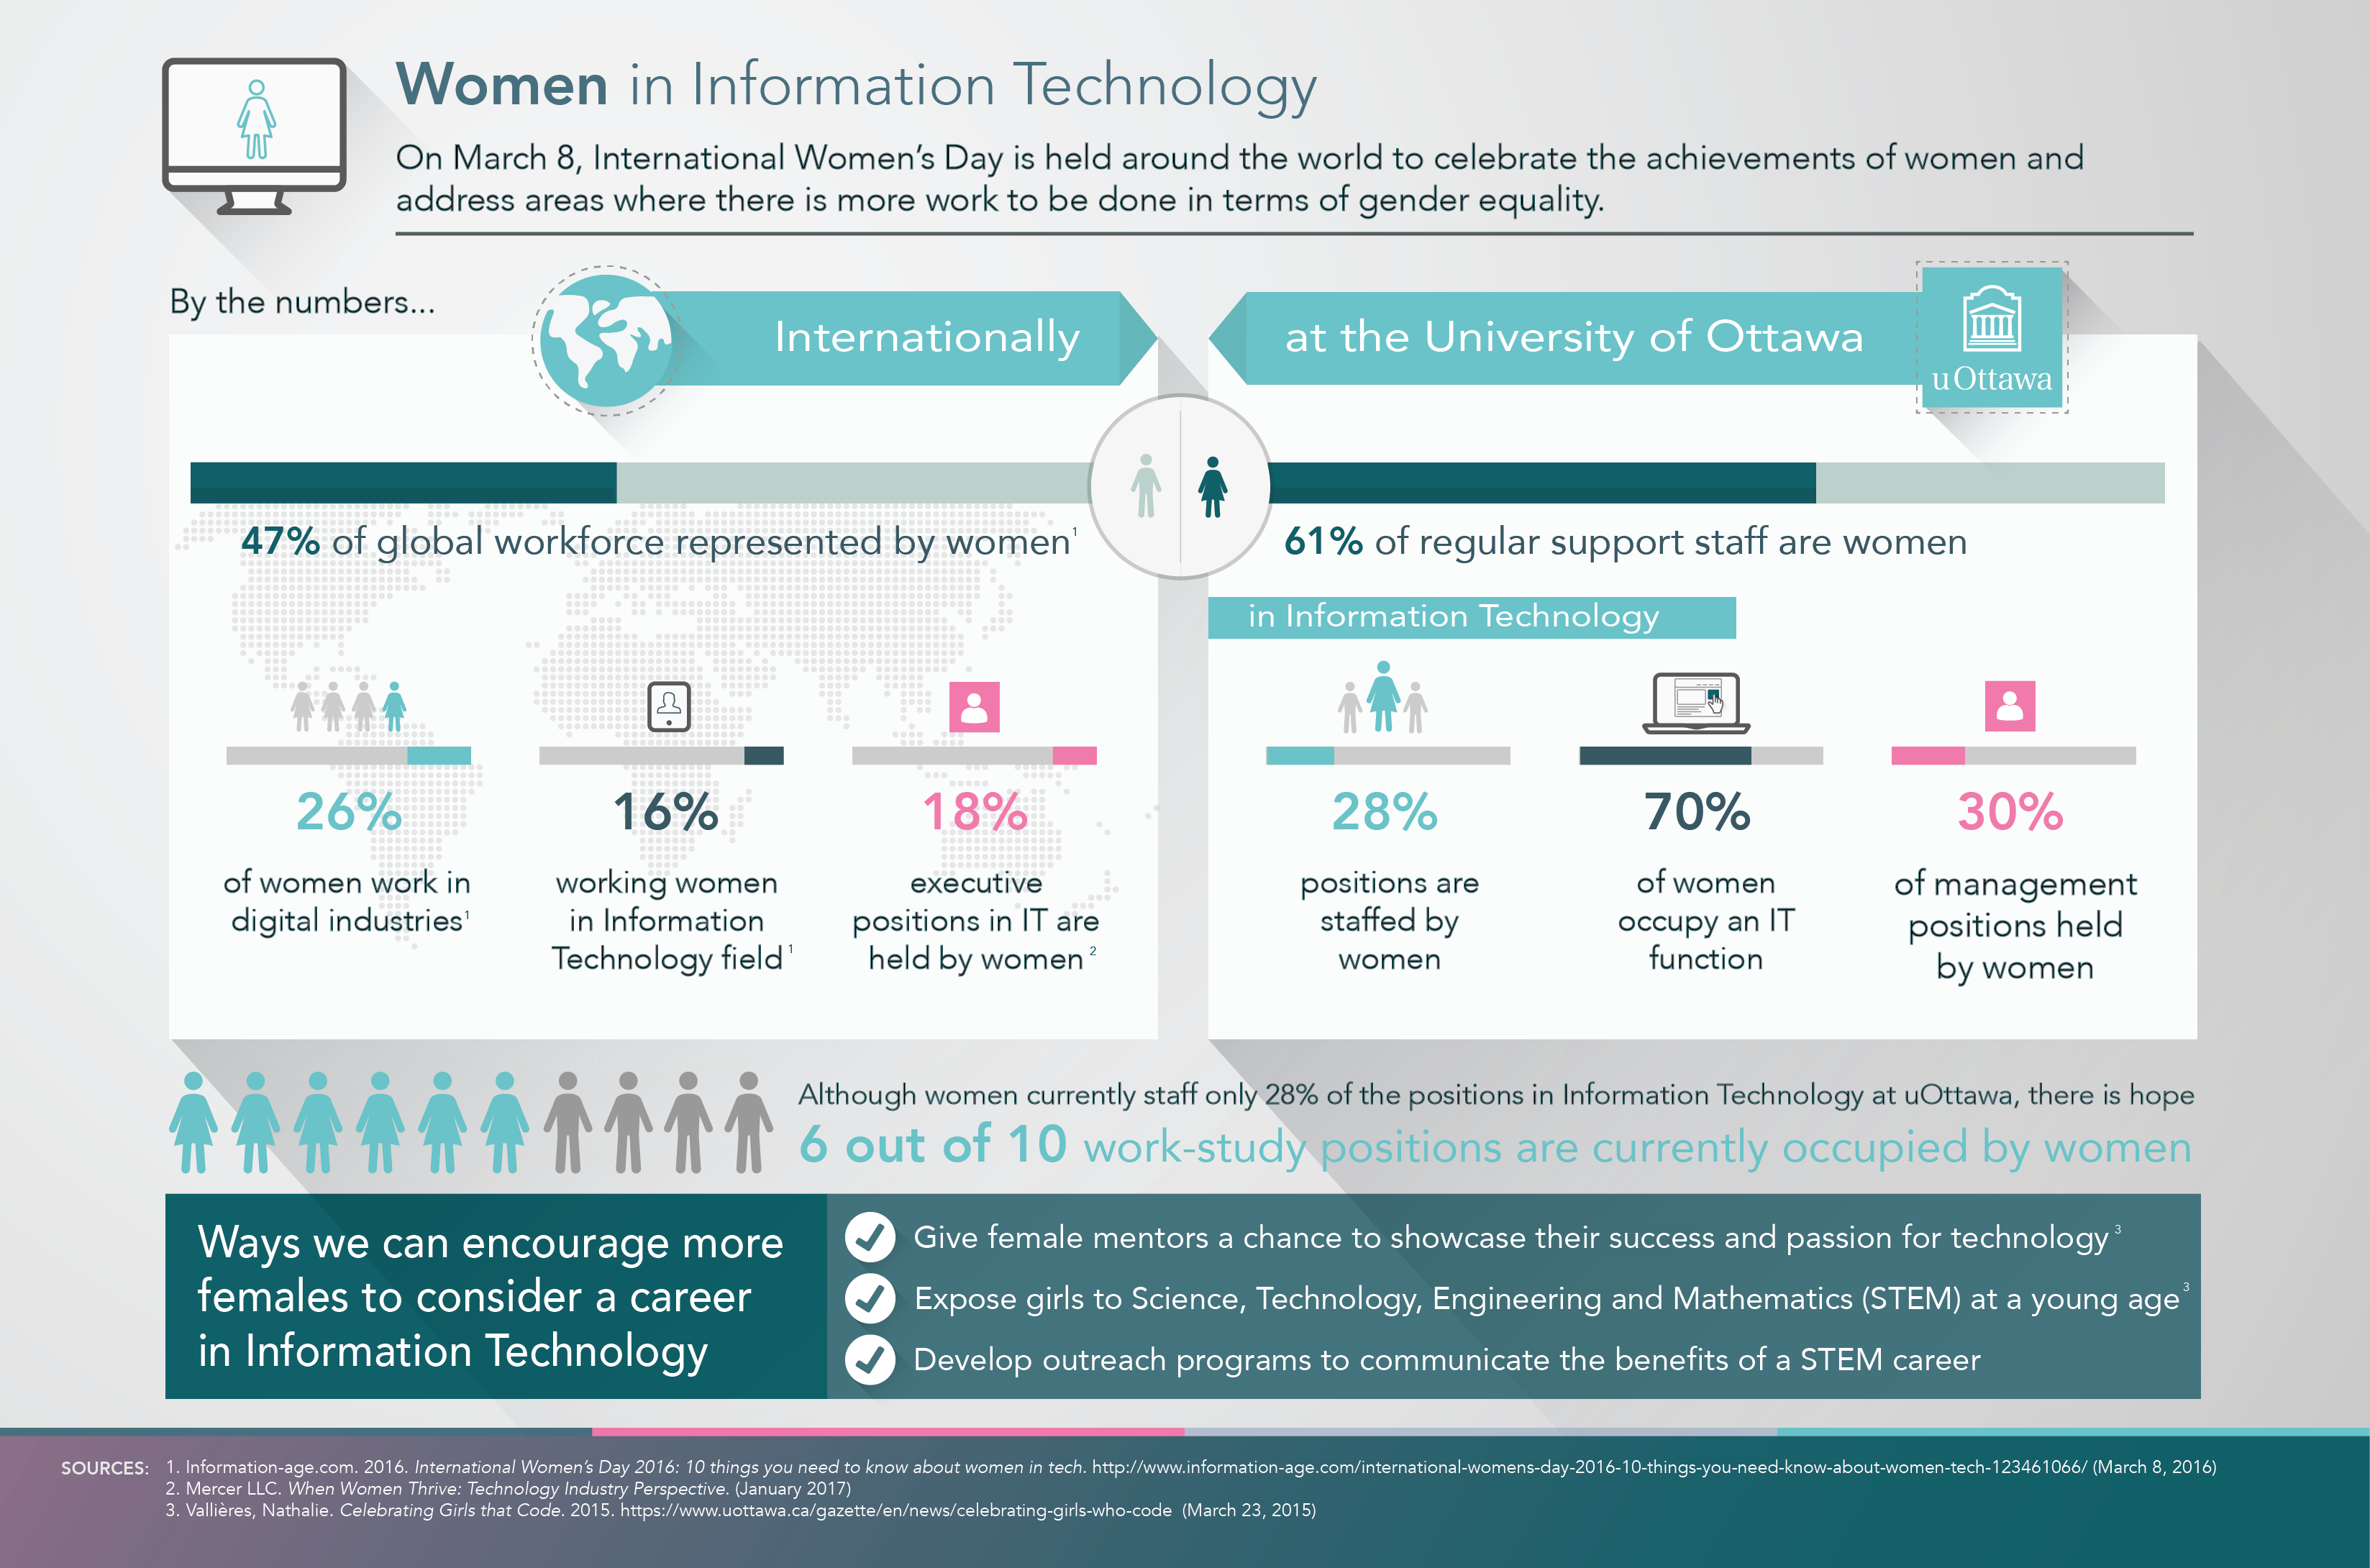 Women in Information Technology Infographic